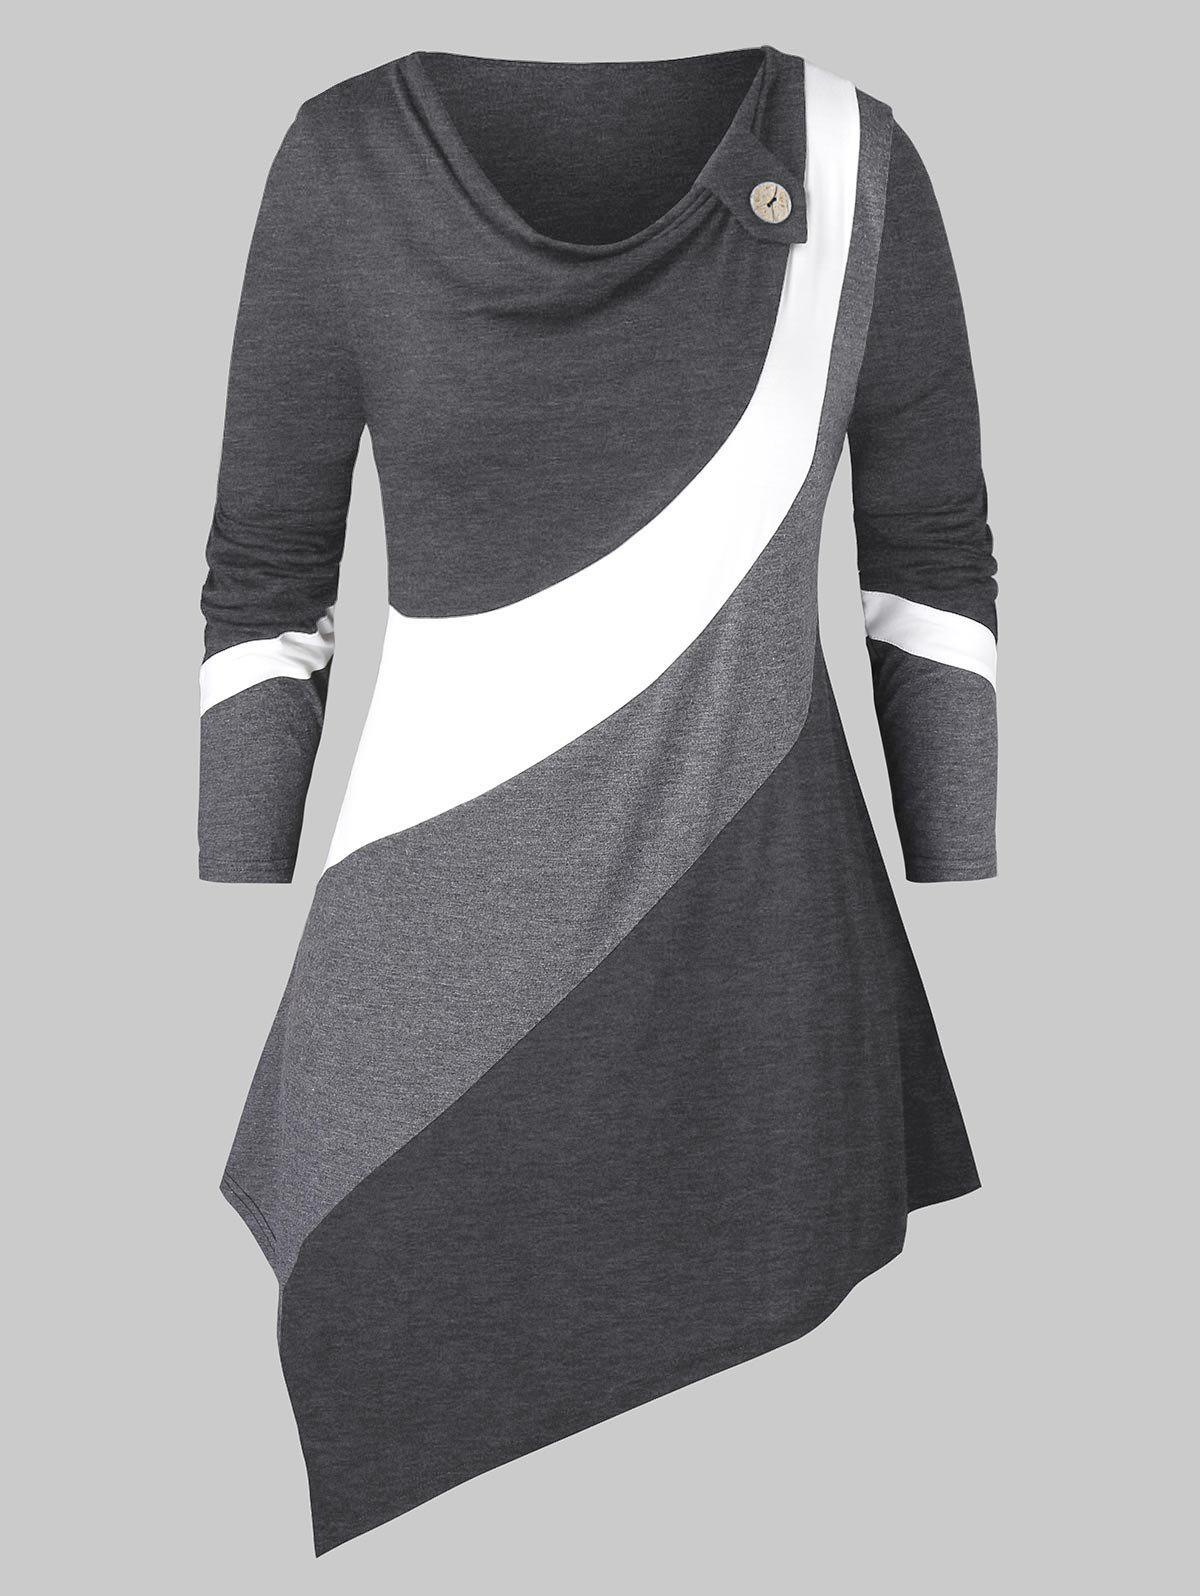 Plus Size Cowl Neck Contrast Color Asymmetric T Shirt - DARK GRAY 3X